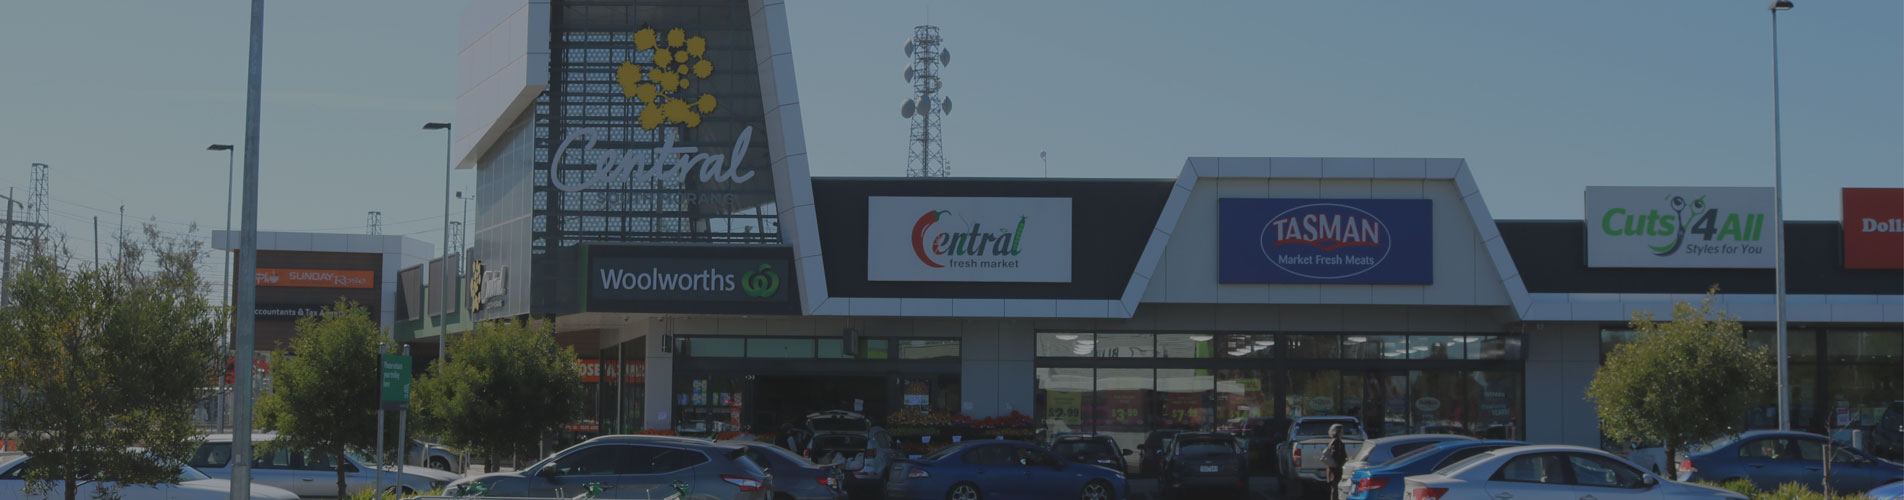 Your central